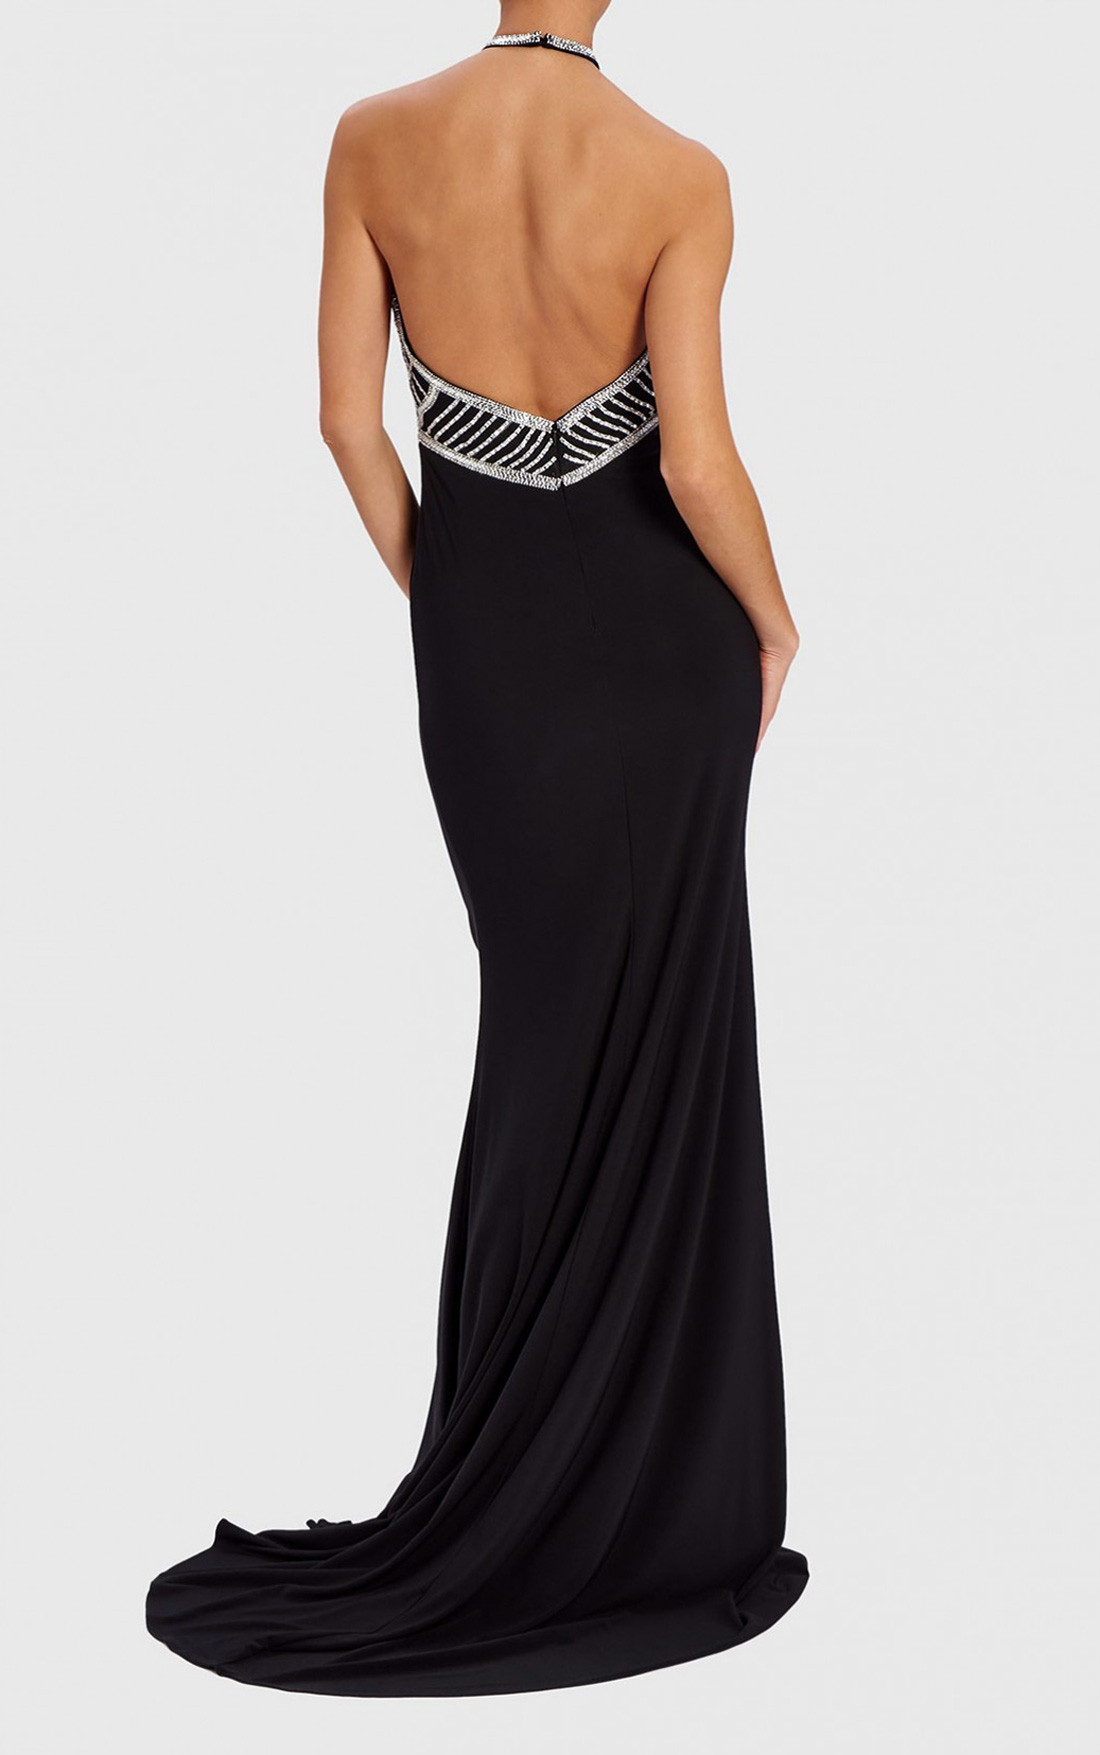 Forever Unique - Carina Black Diamante Dress (WF1201)